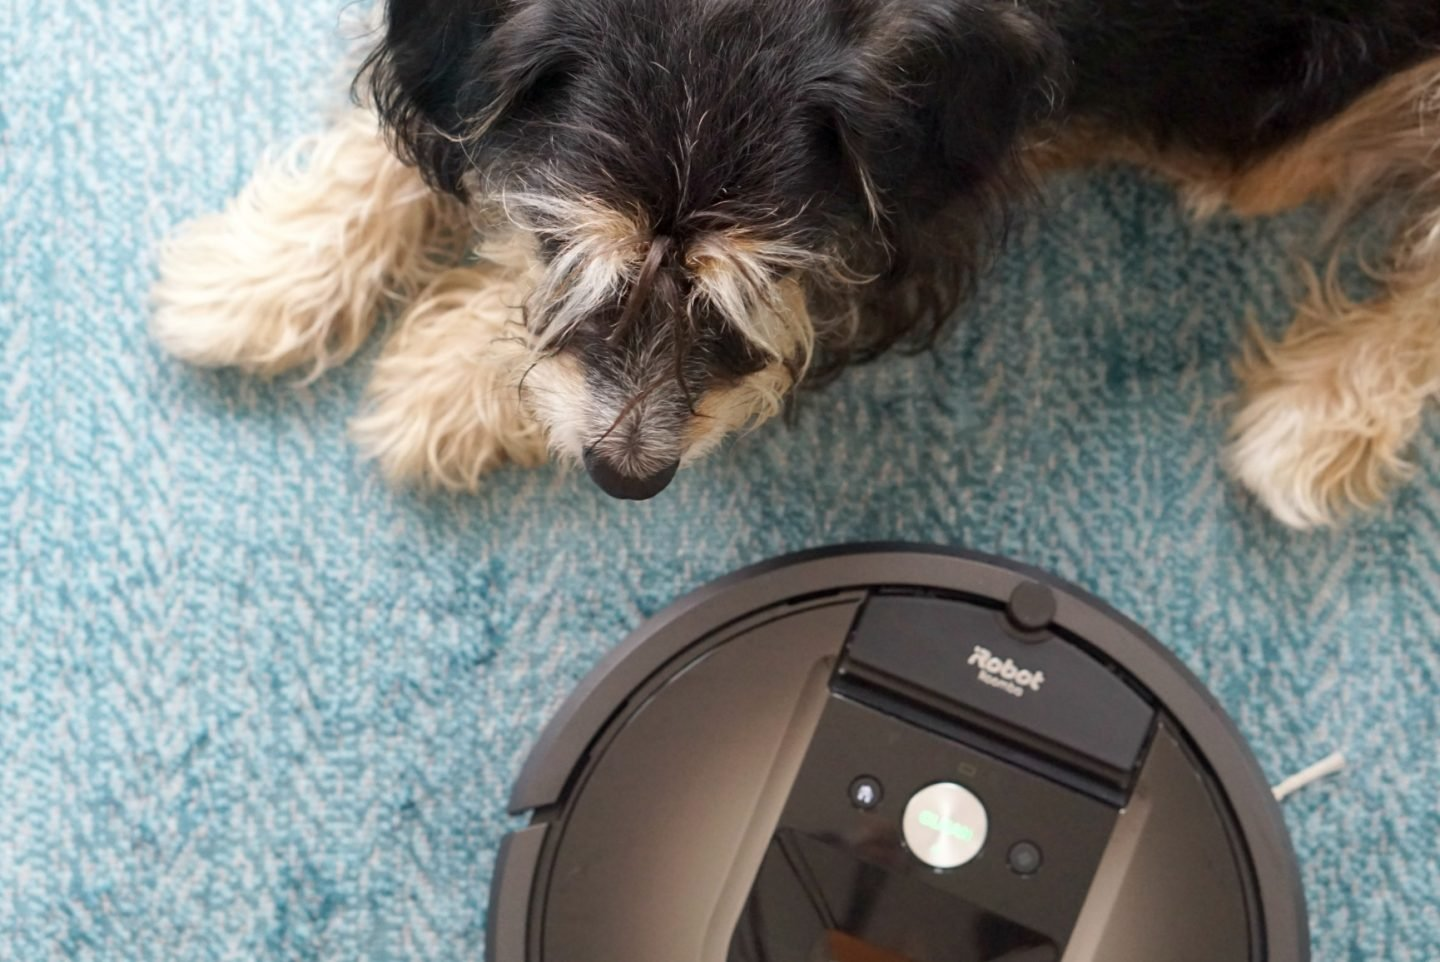 Review of the Roomba 980